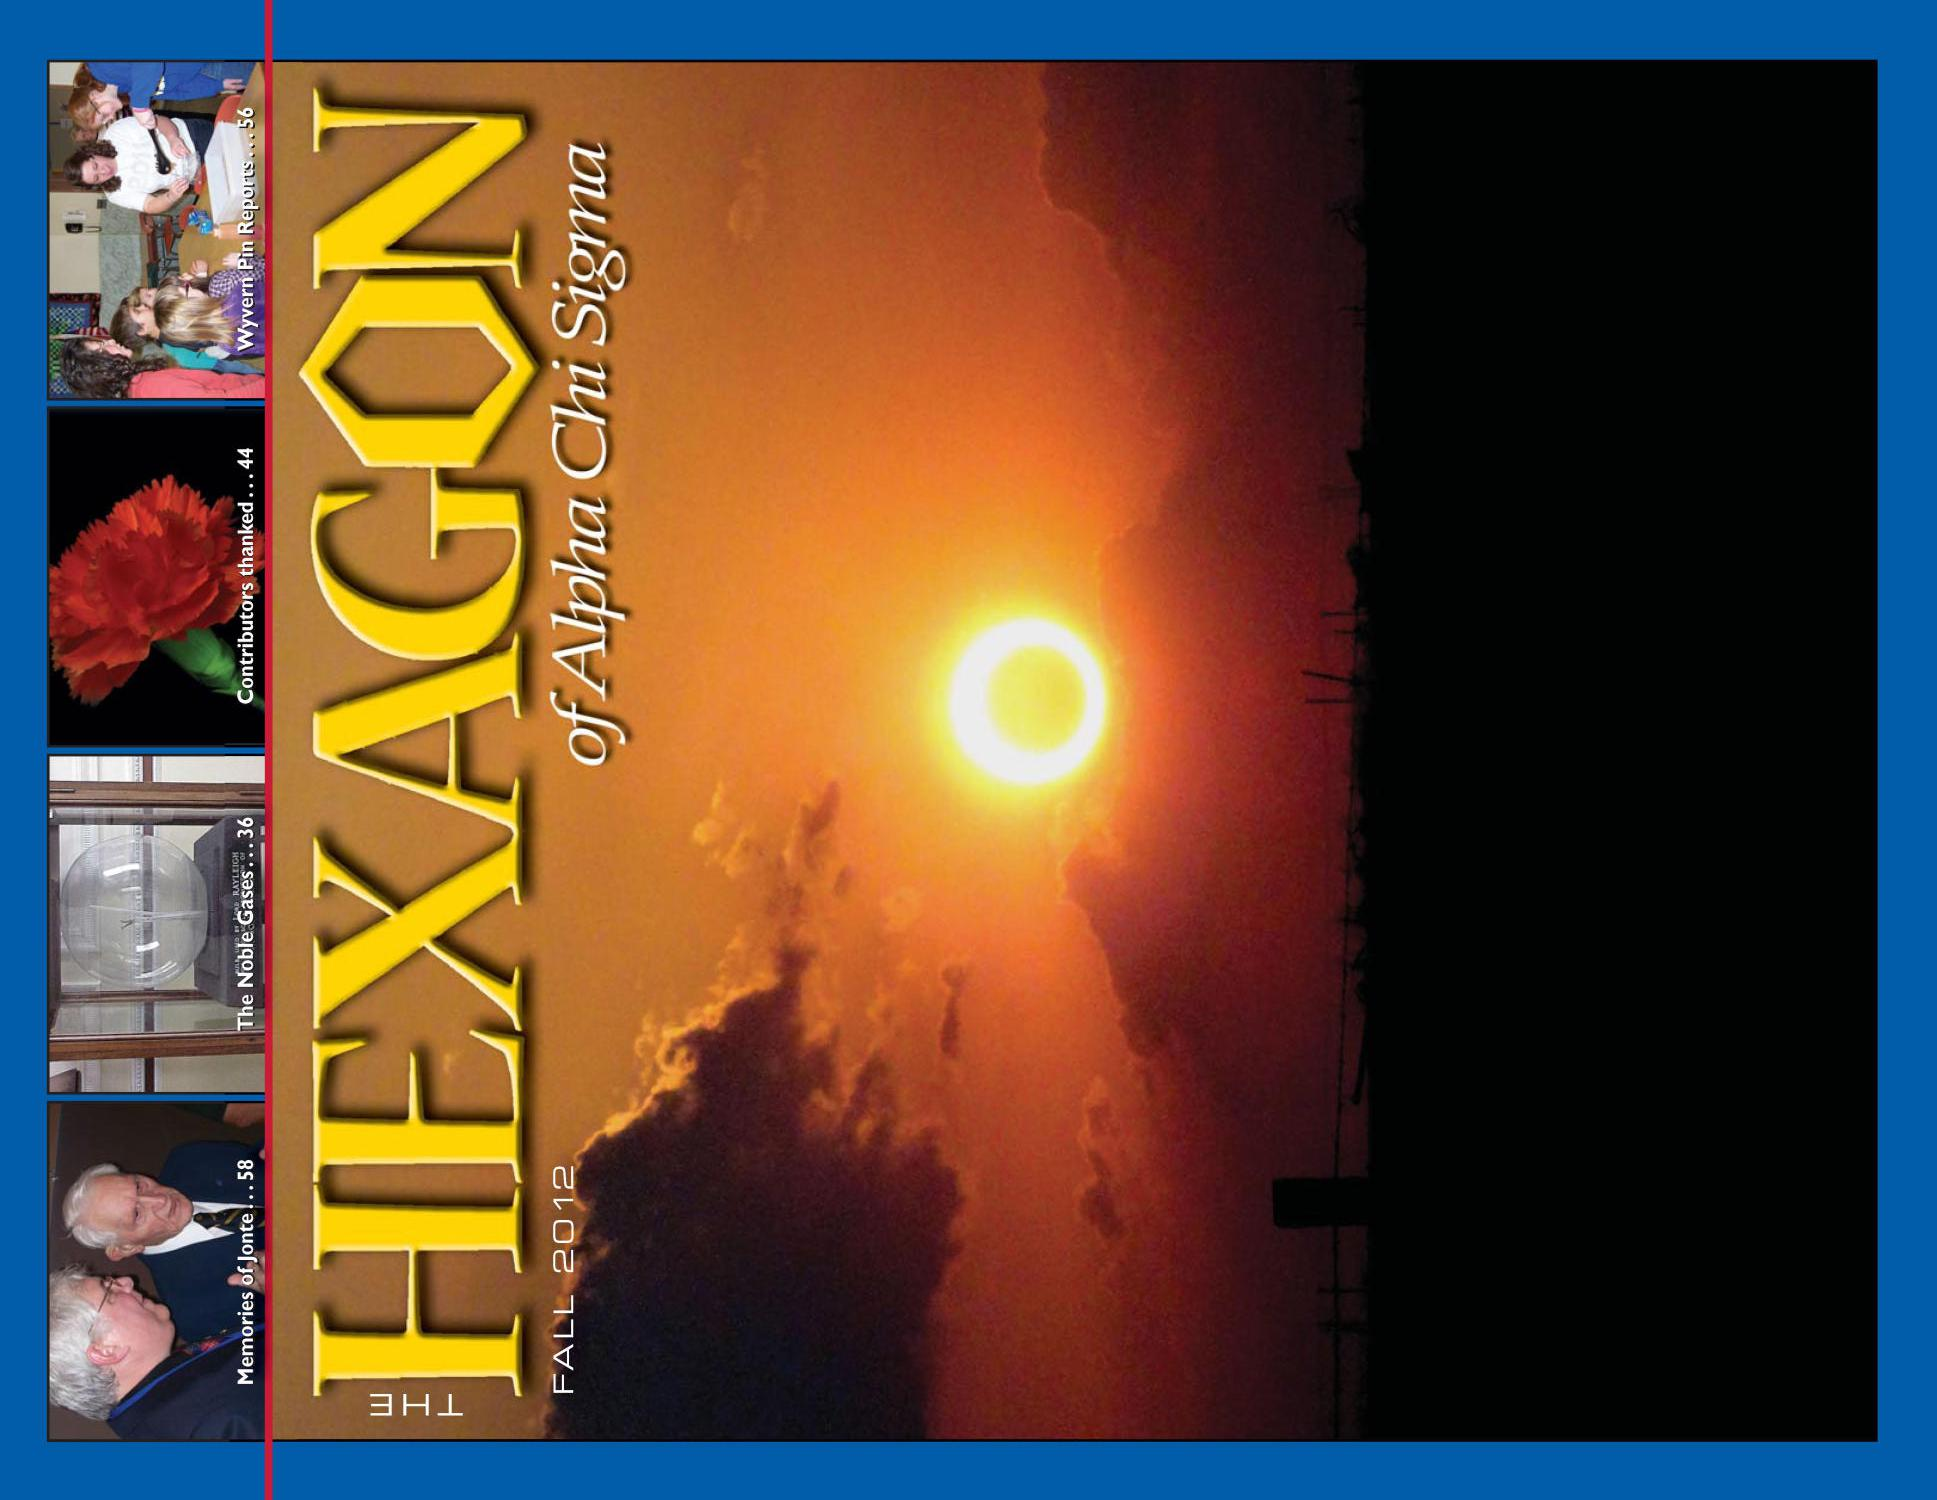 The Hexagon, Volume 103, Number 3, Fall 2012                                                                                                      33